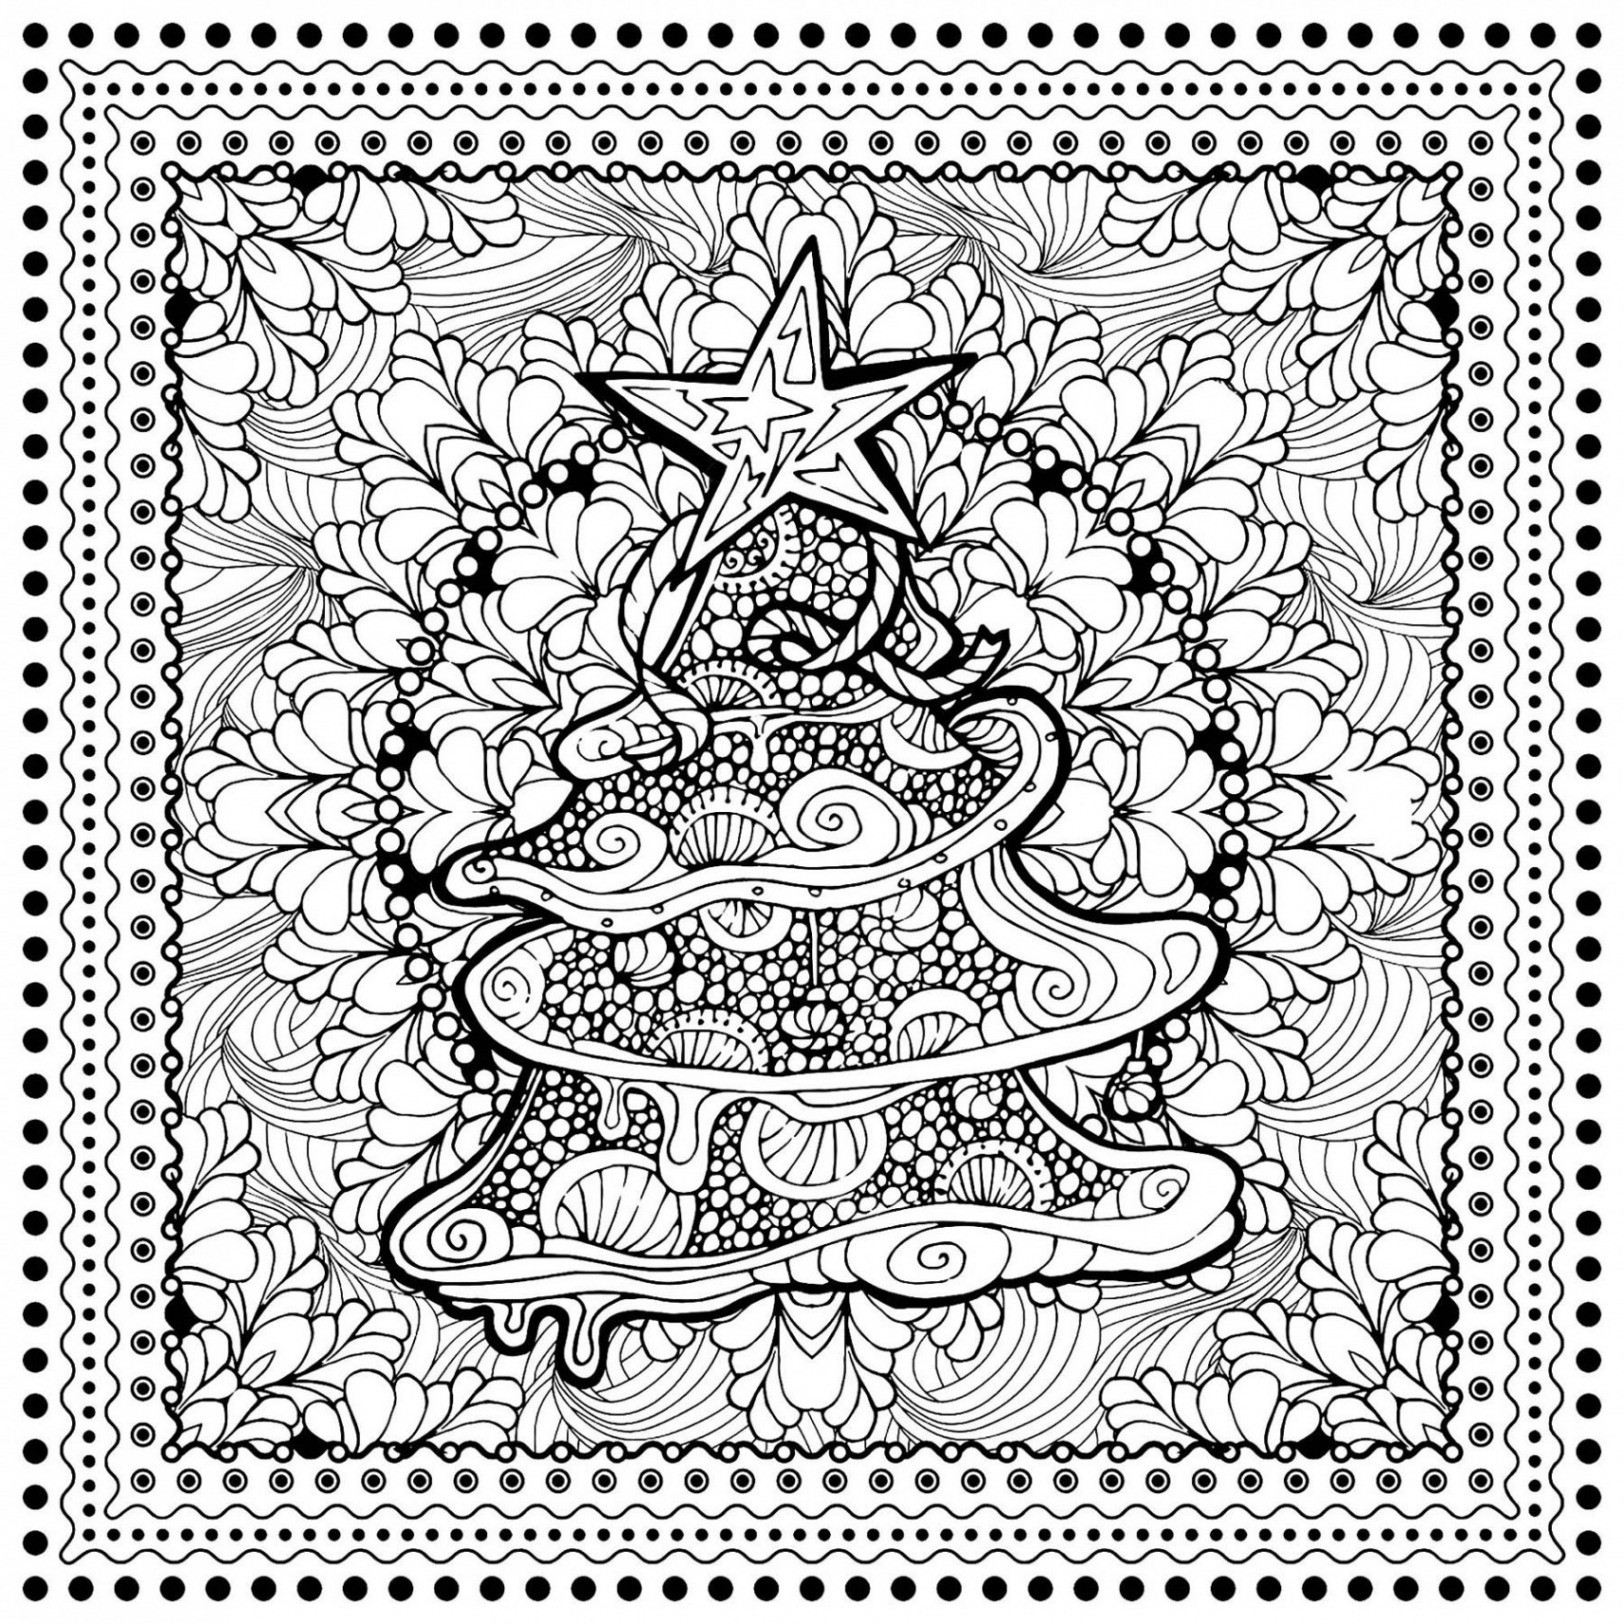 Christmas Tree Coloring Pages For Adults With Elegant Presents WWW PANTRY